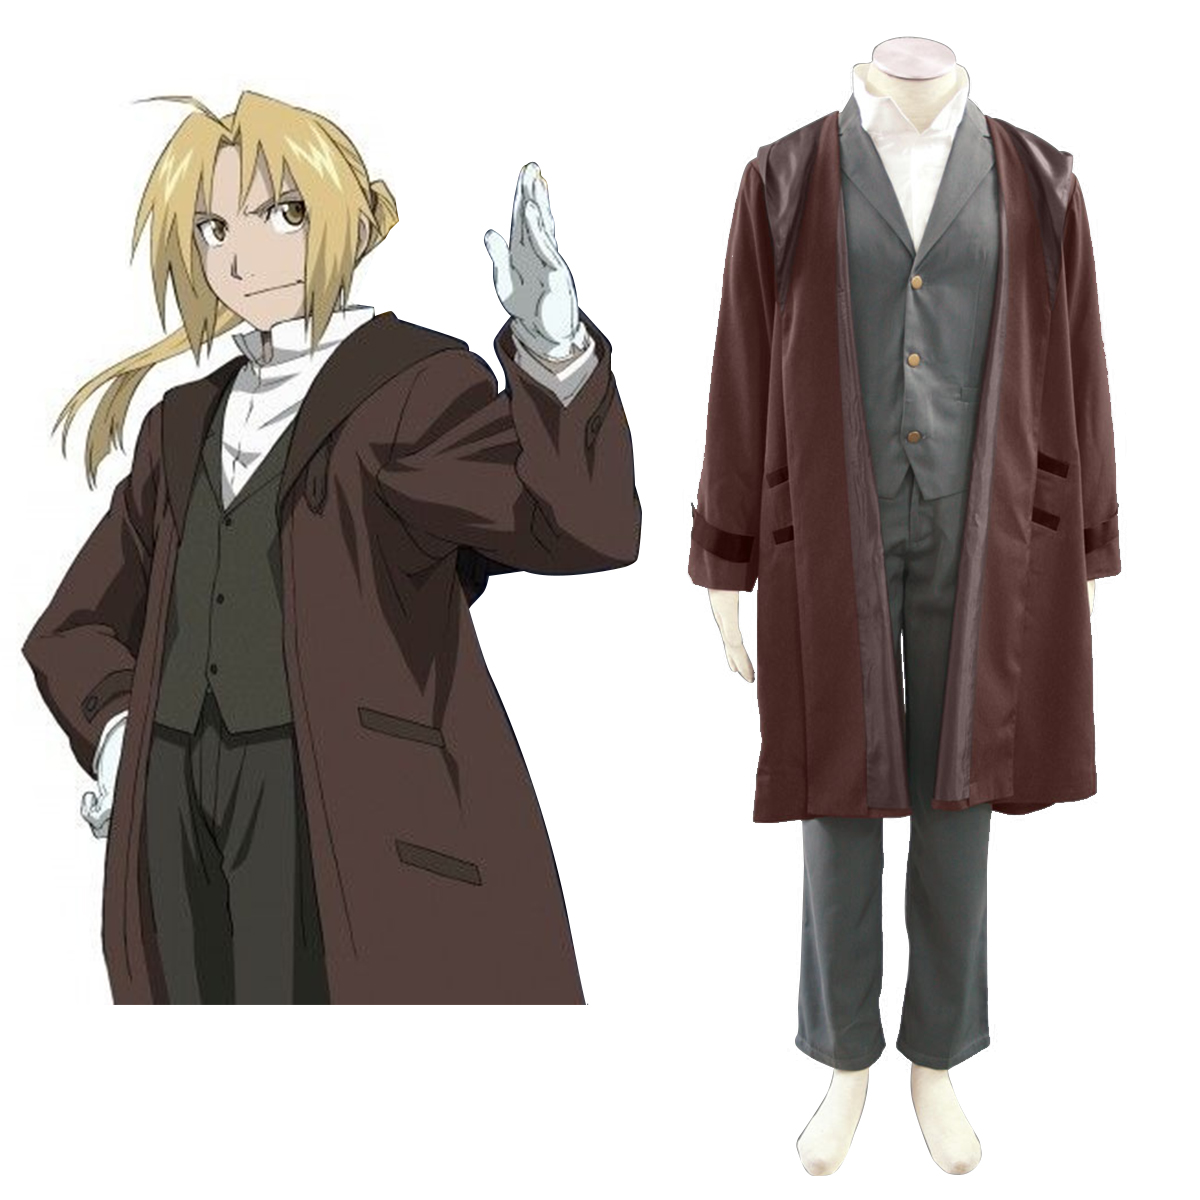 Fullmetal Alchemist Edward Elric 2 Anime Cosplay Costumes Outfit